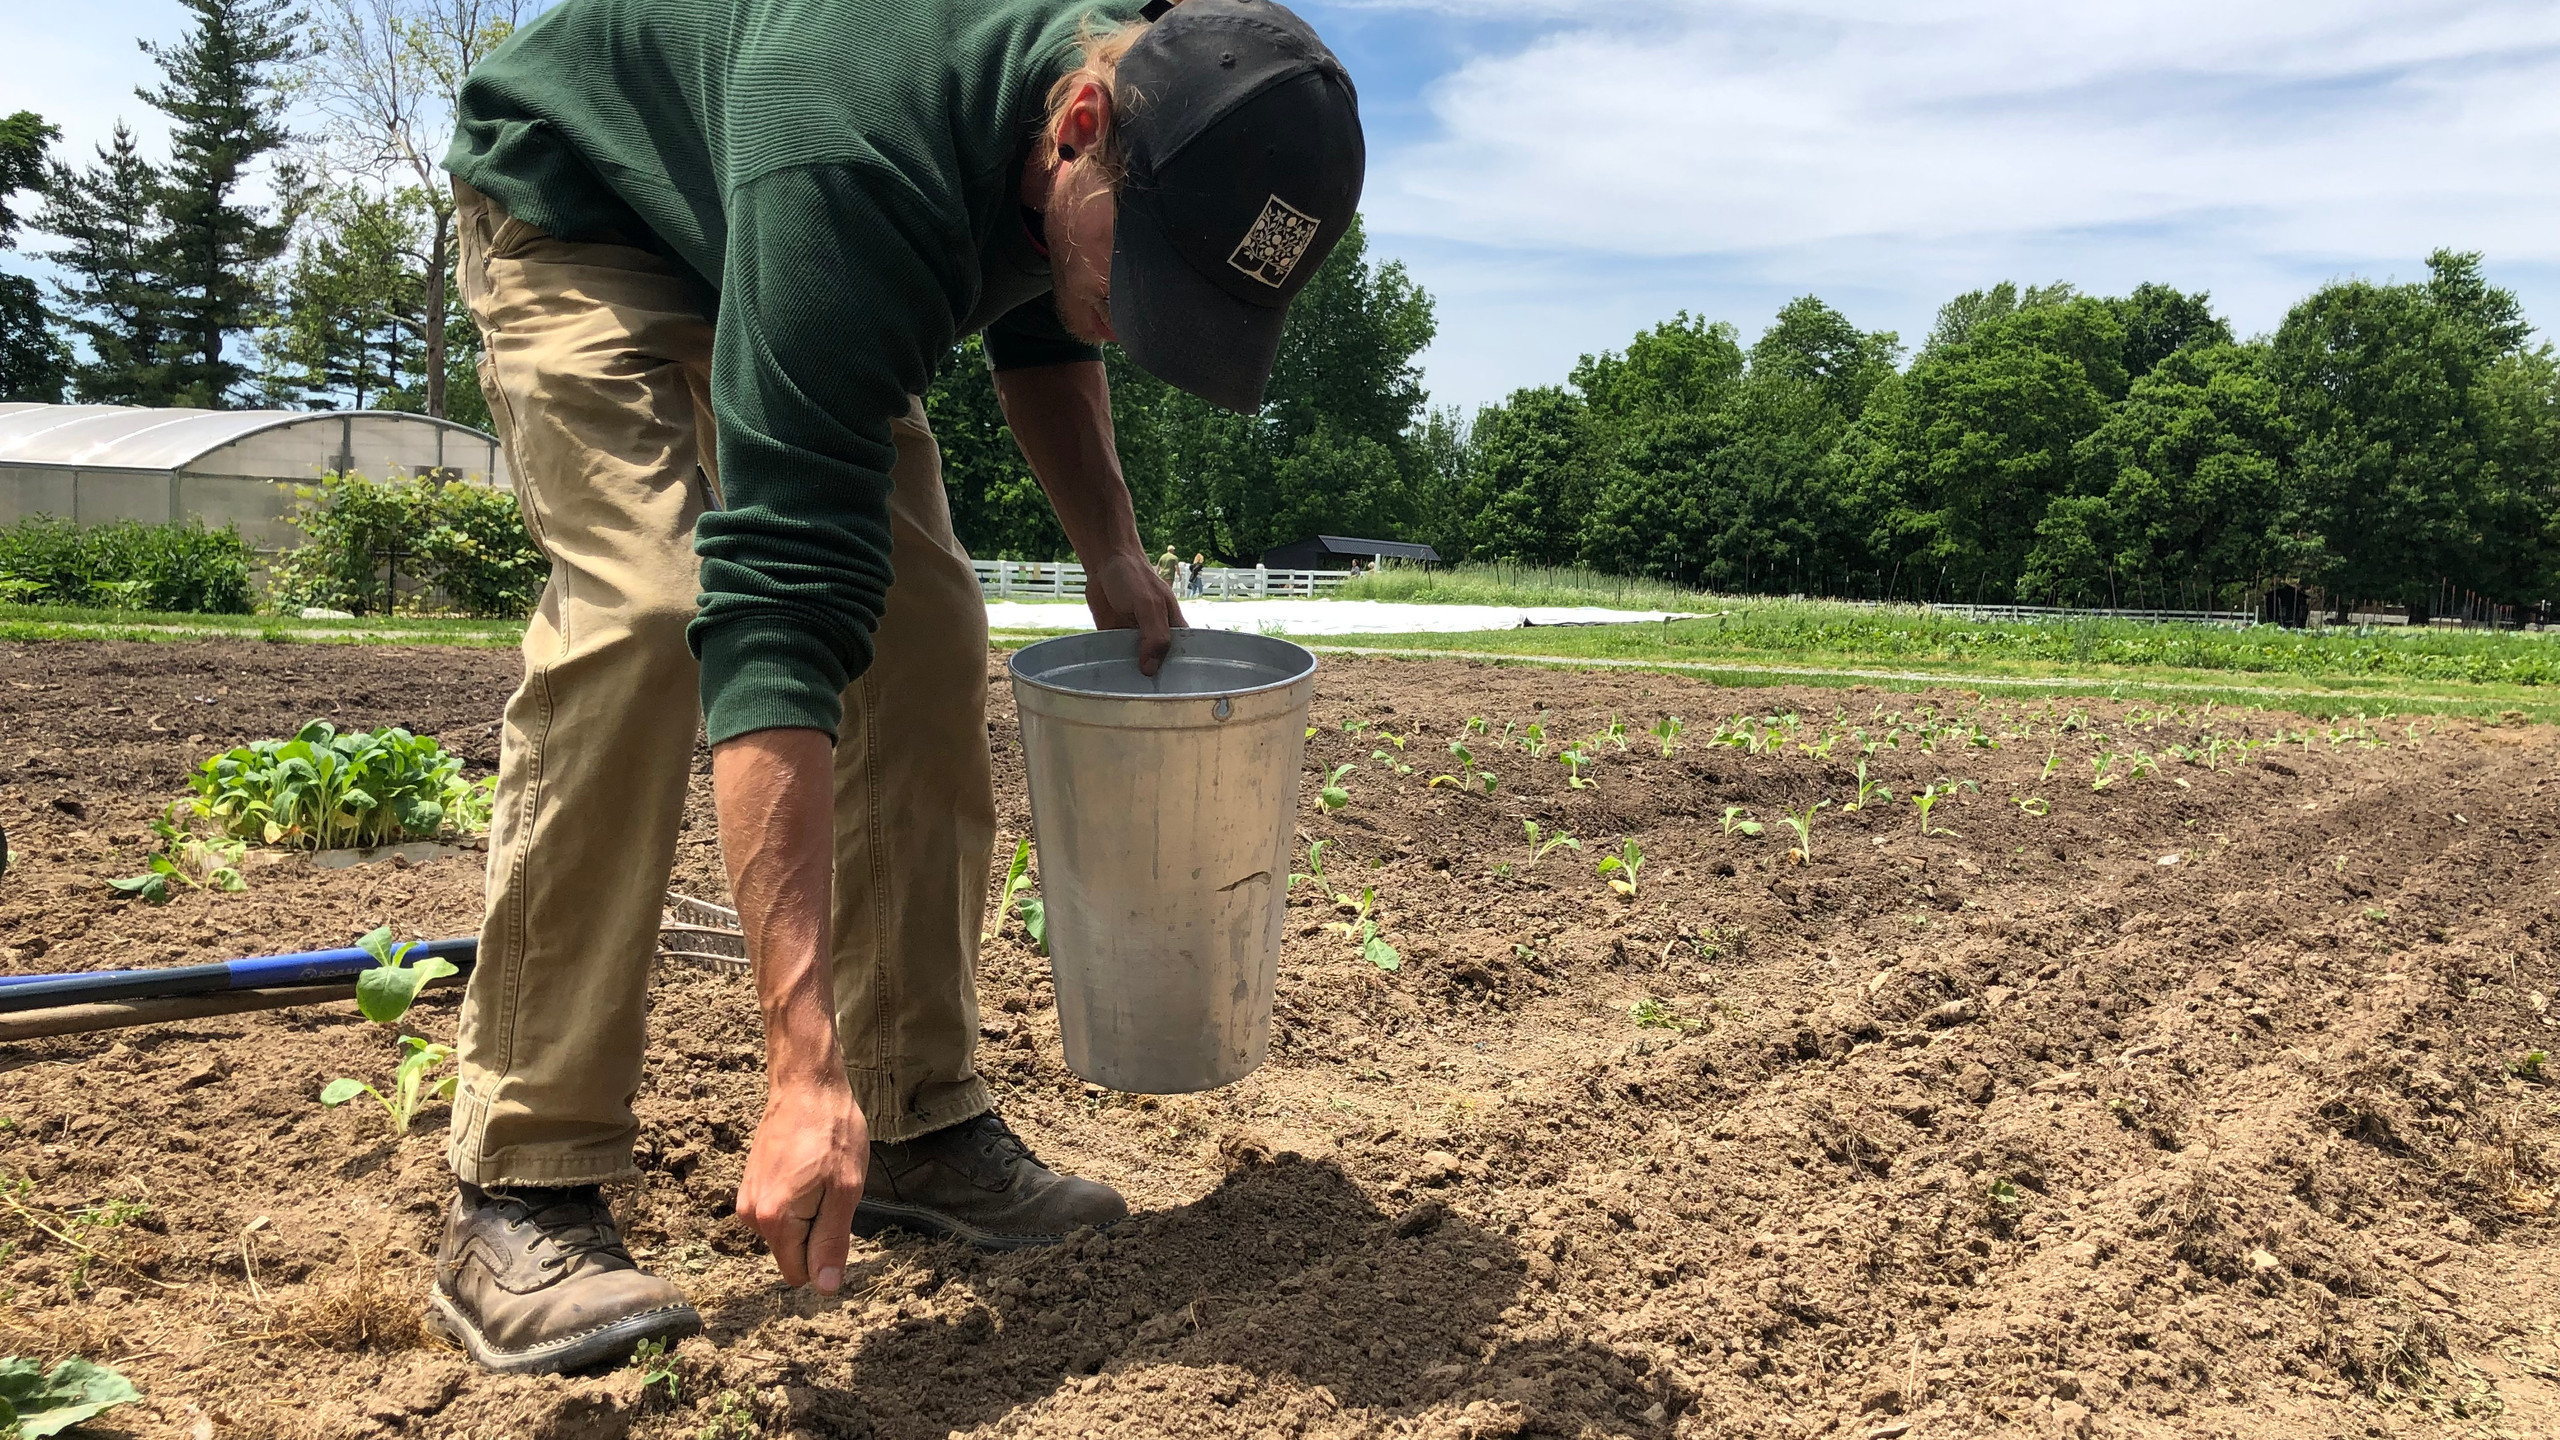 Michael Moore, Farm Manager of Shaker Village in Harrodsburg, Kentucky, plants the first hemp seeds on the property since the 19th century.